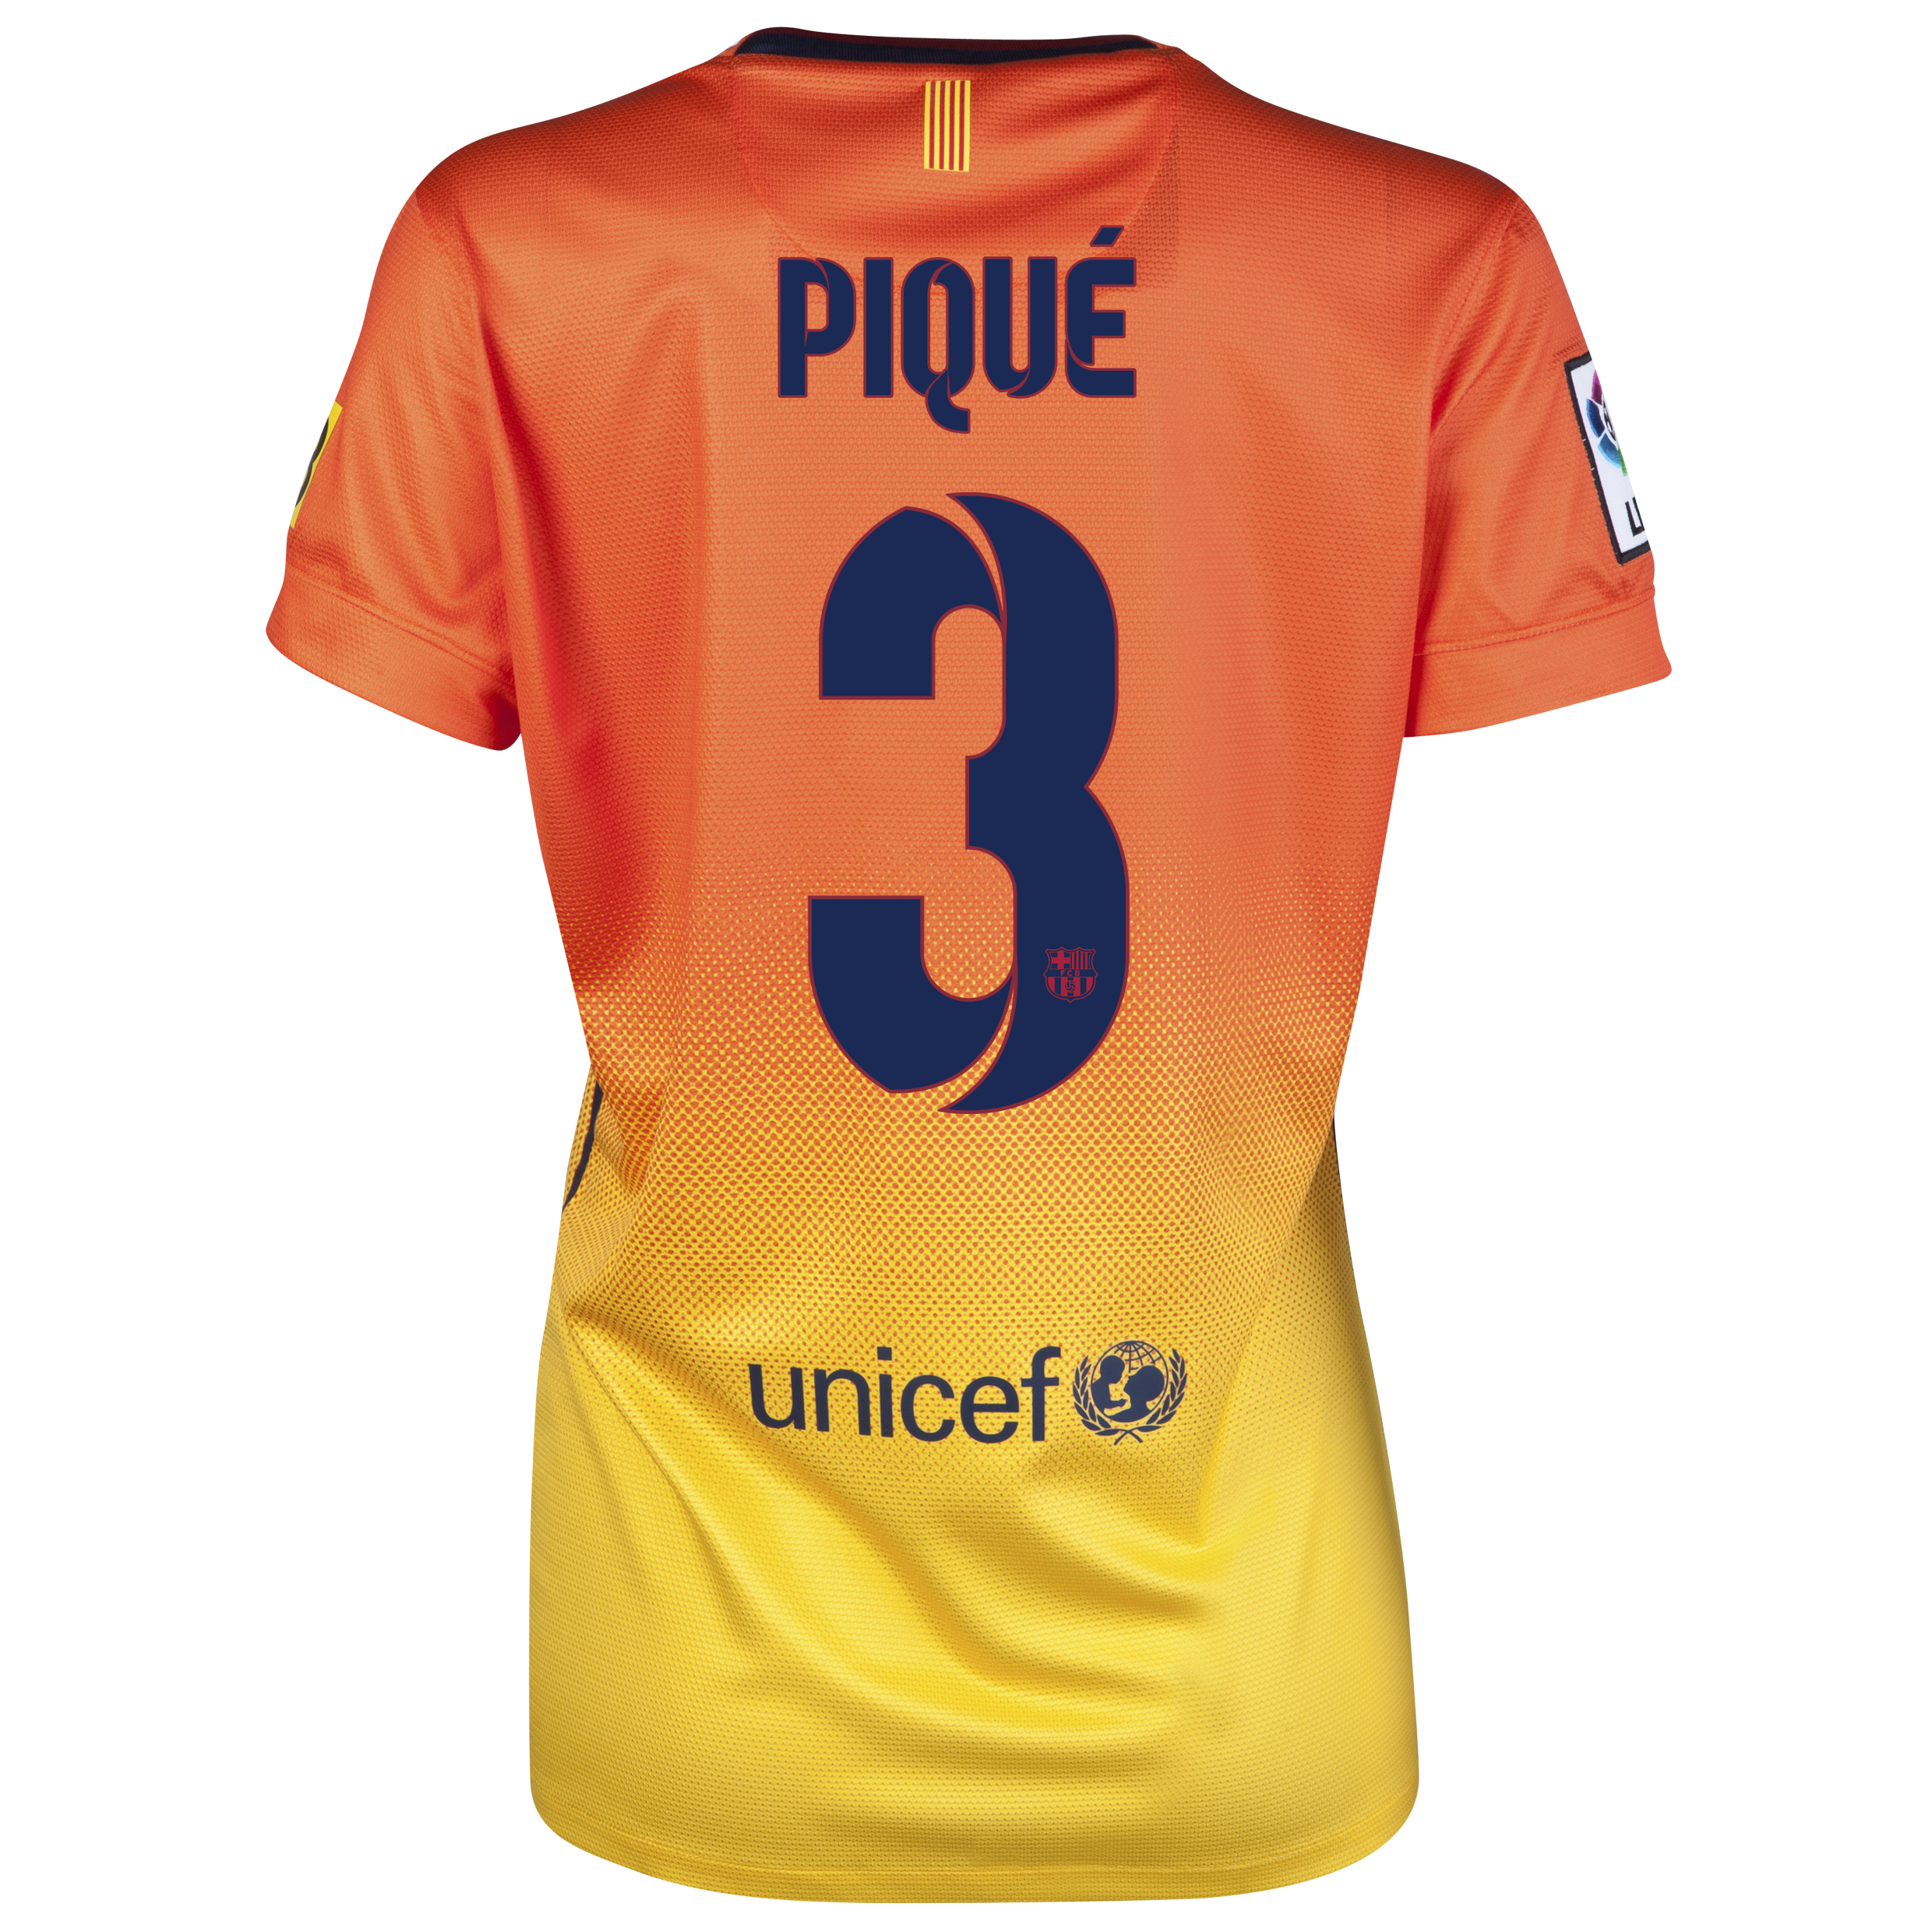 Barcelona Away Shirt 2012/13 -  Womens with Pique 3 printing